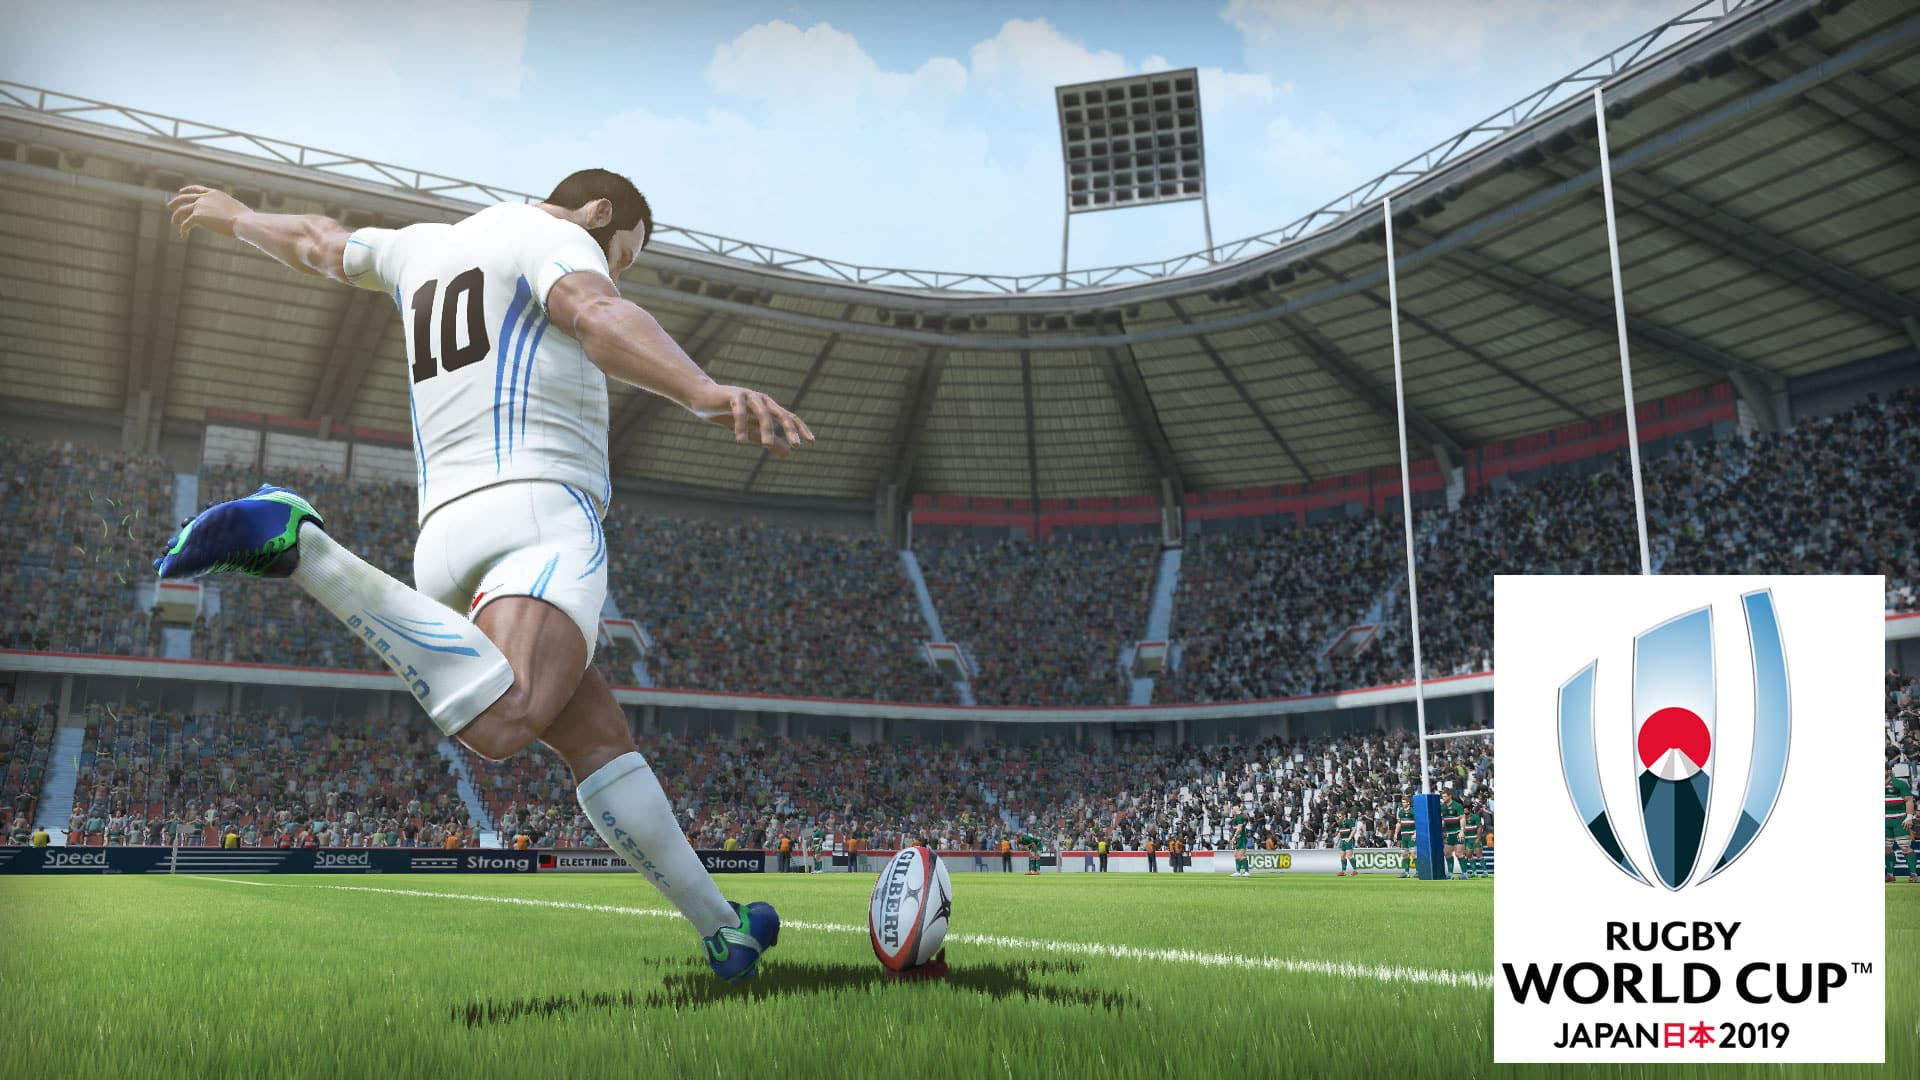 2019 Rugby World Cup Video Game